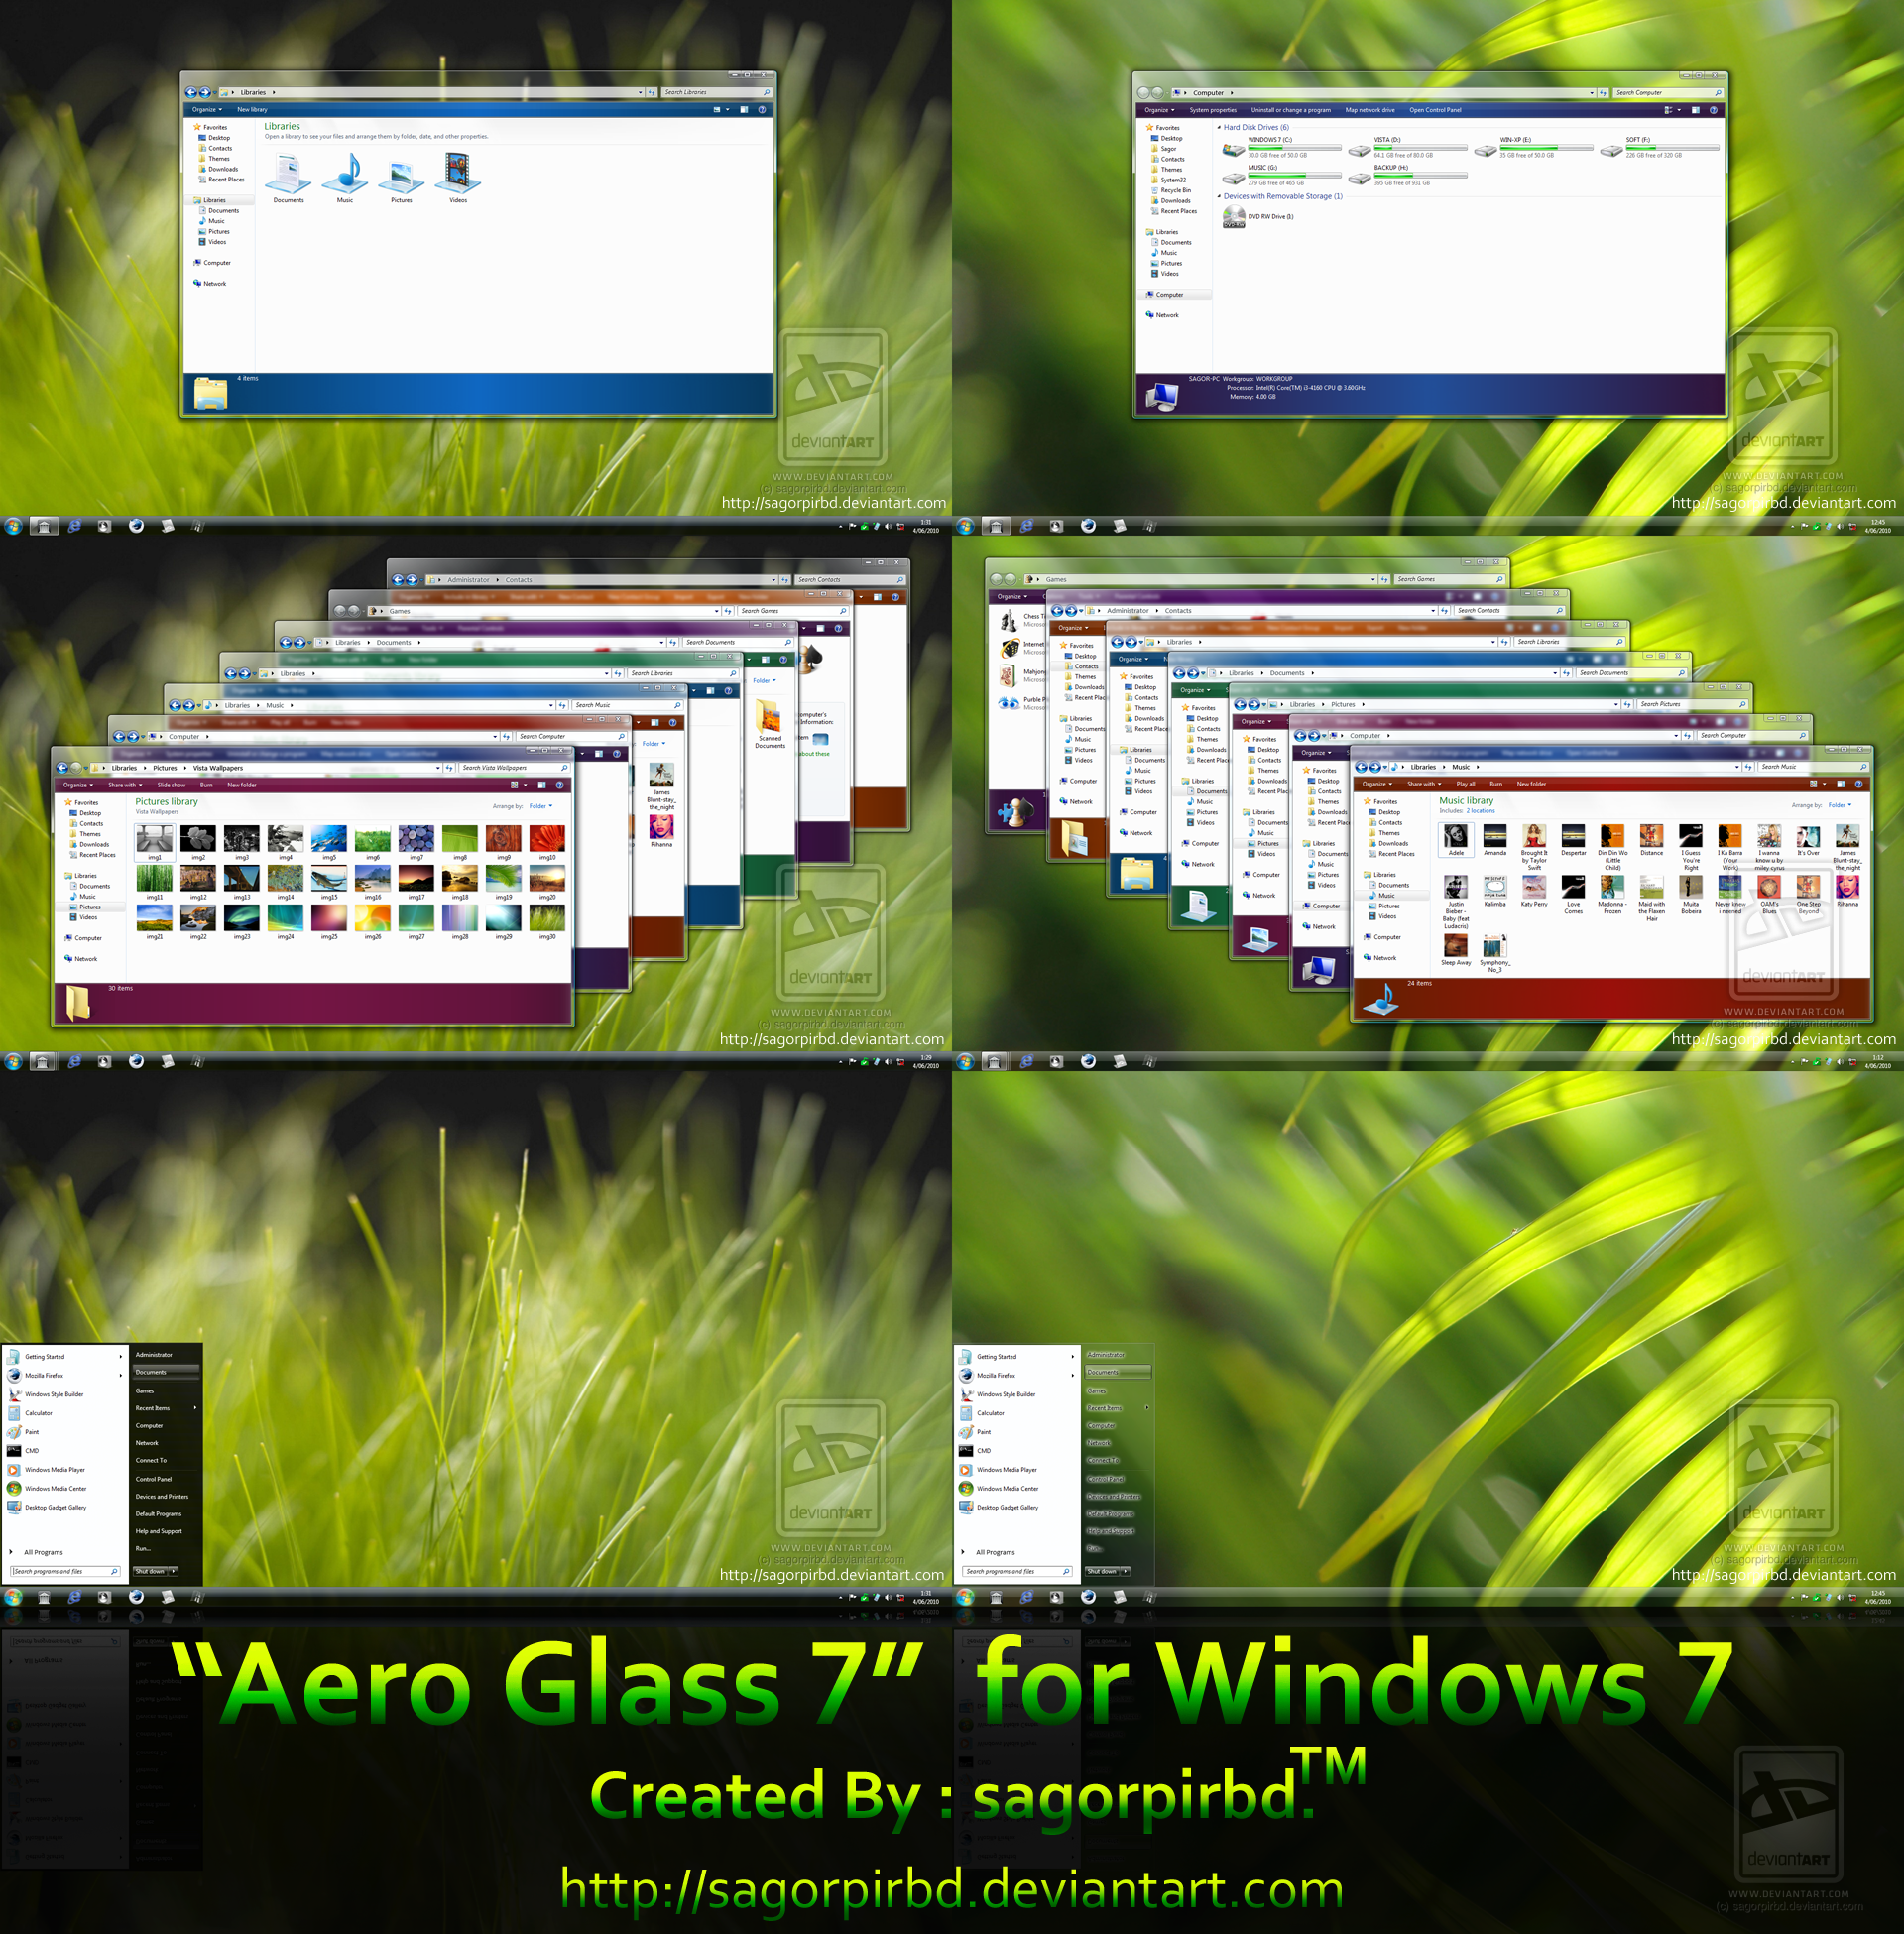 Aero Glass 7 for Windows 7 by sagorpirbd on DeviantArt